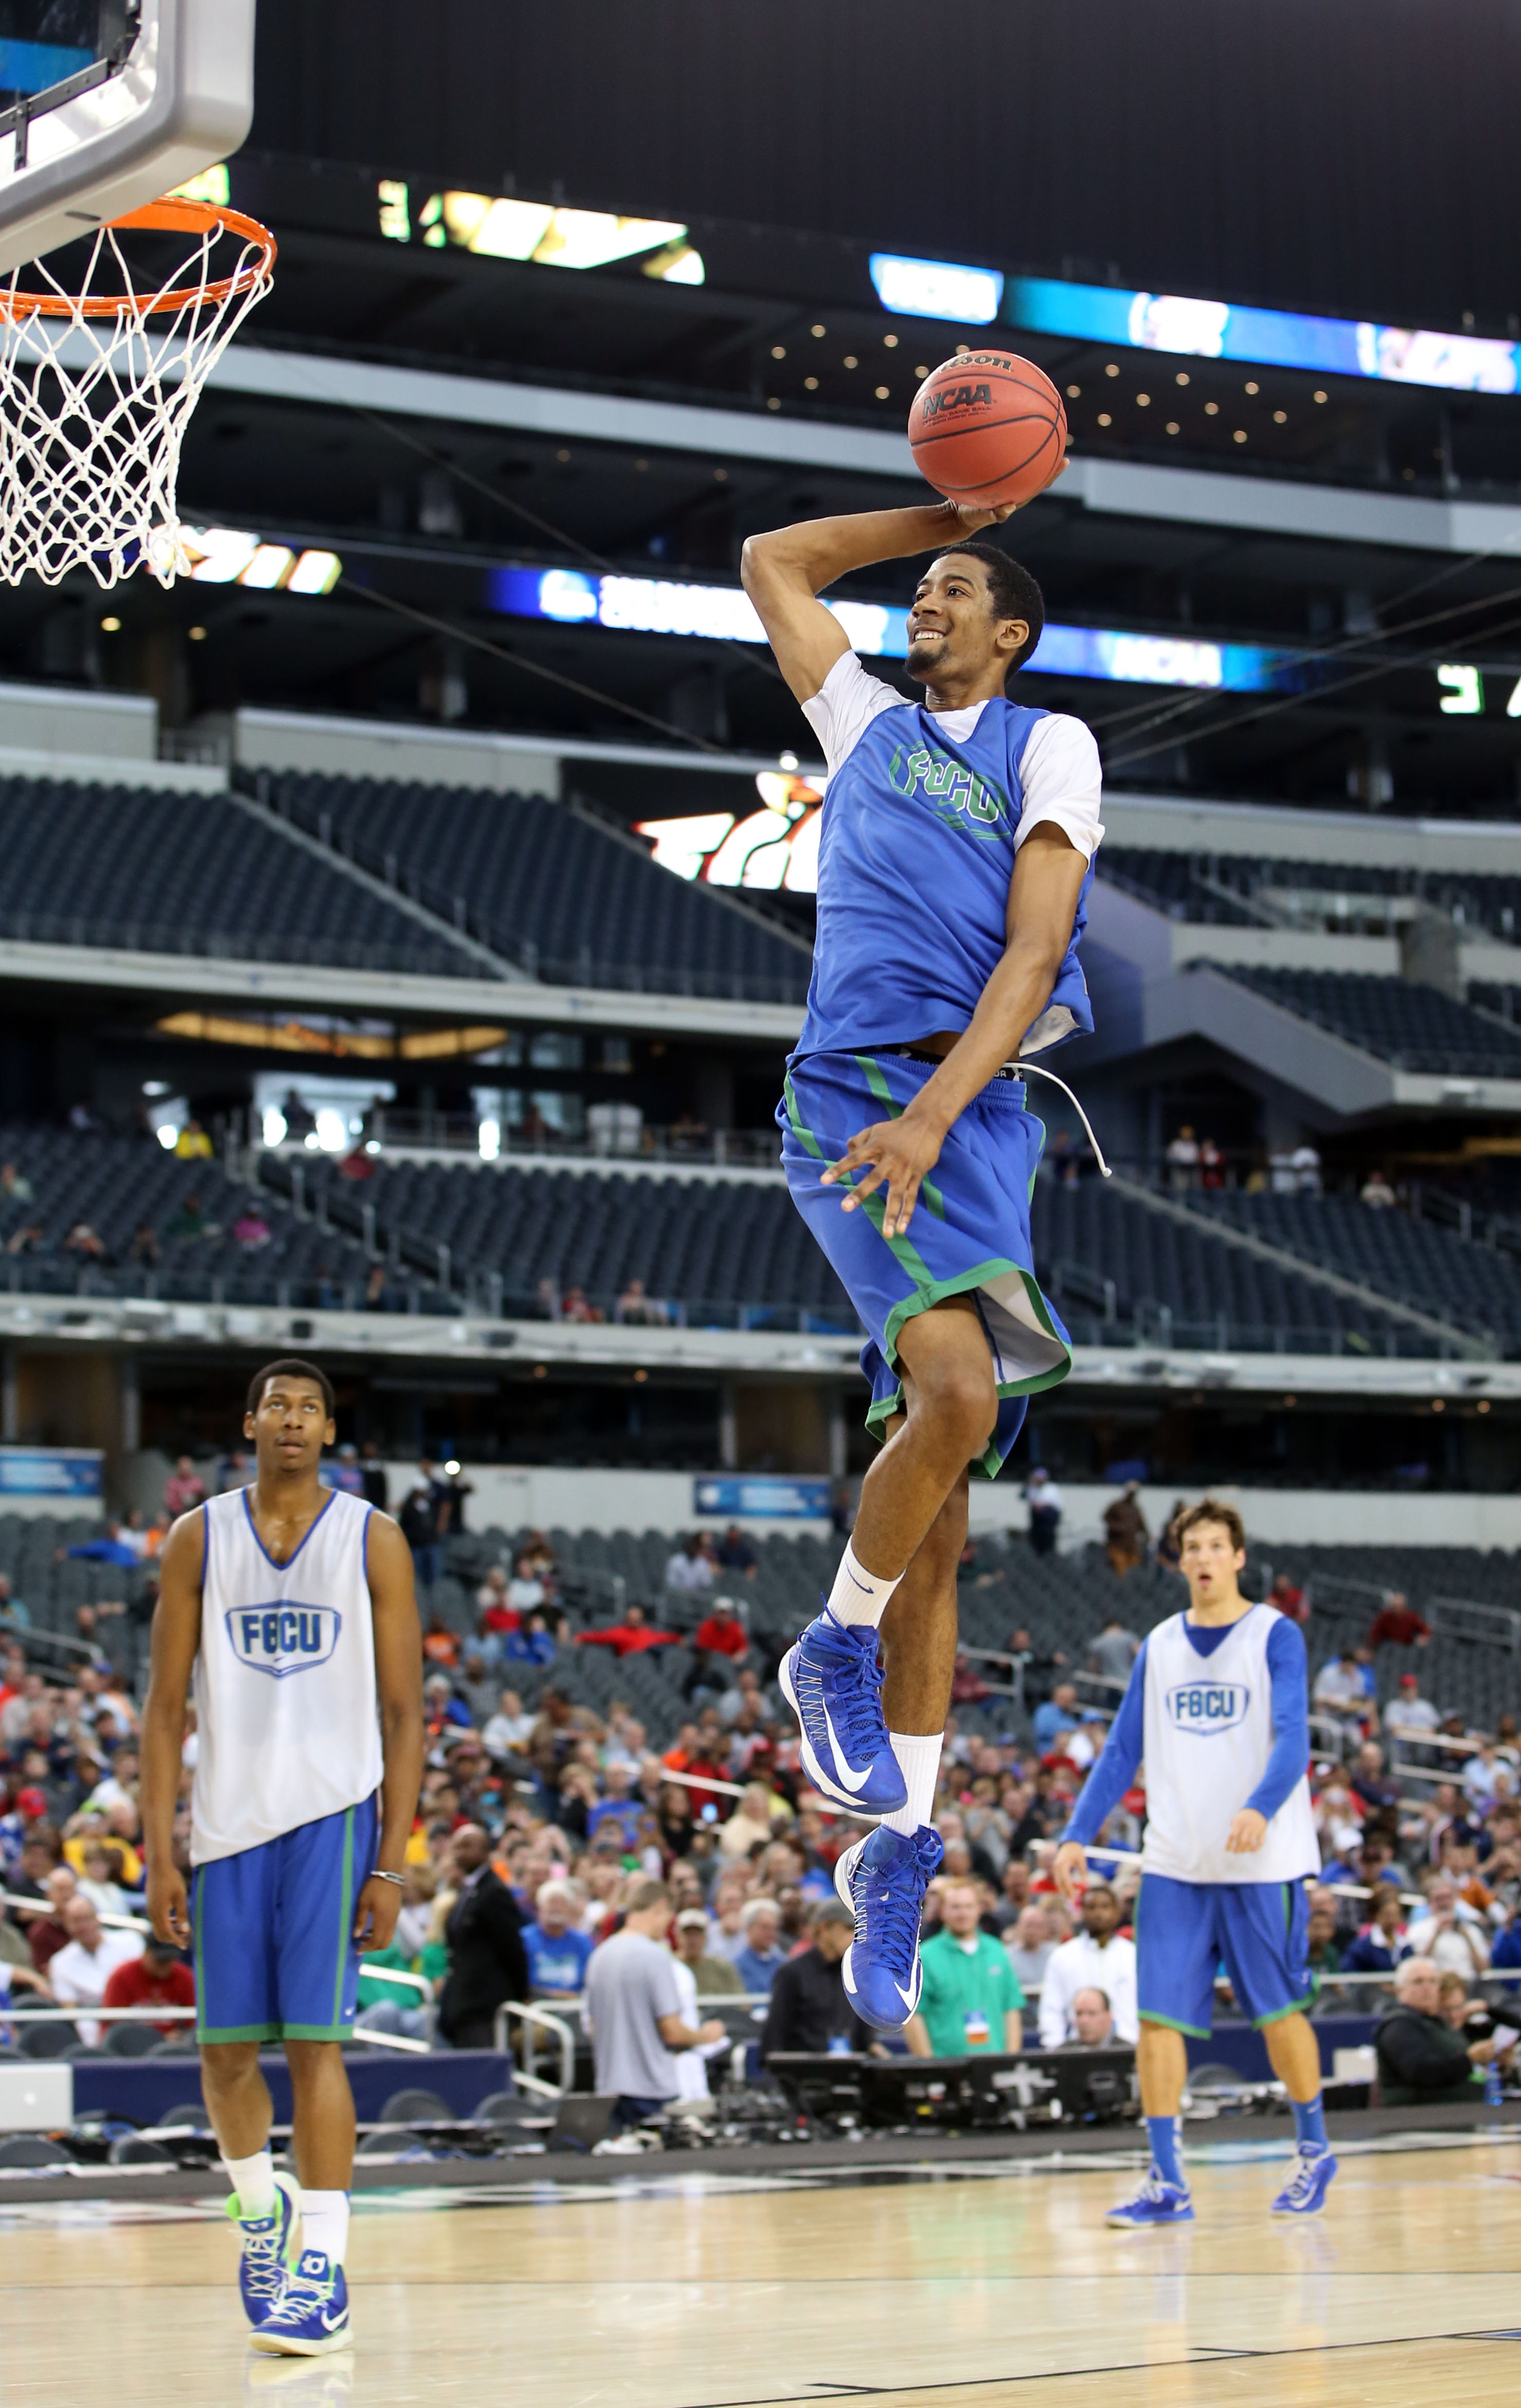 FGCU transfer Leonard Livingston is one of two new signees to Miami's basketball team.